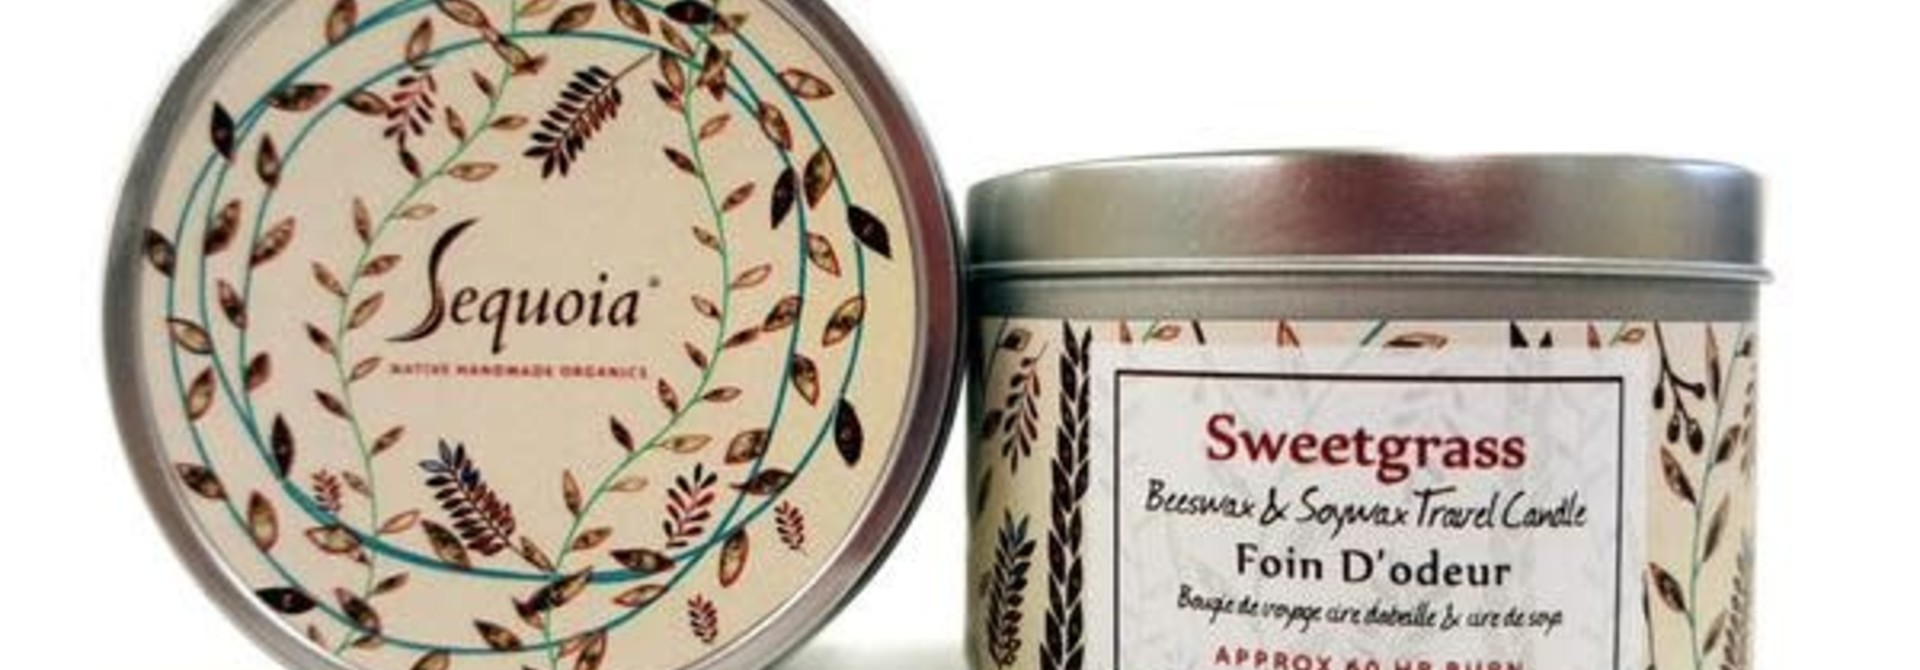 Sequoia 15hr candle- Sweetgrass